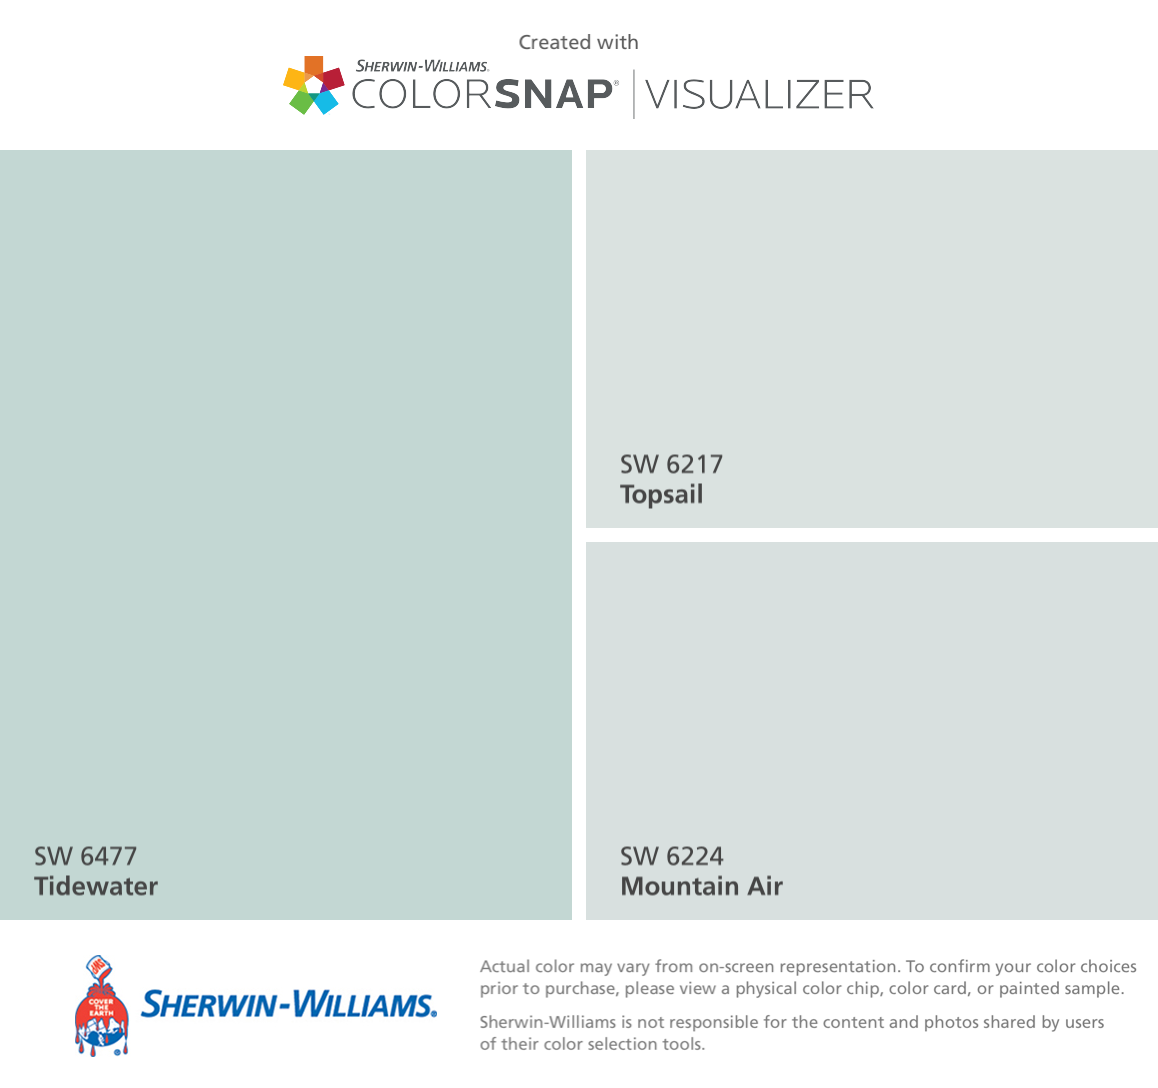 I found these colors with colorsnap visualizer for iphone by i found these colors with colorsnap visualizer for iphone by sherwin williams tidewater sw topsail sw mountain air sw nvjuhfo Image collections